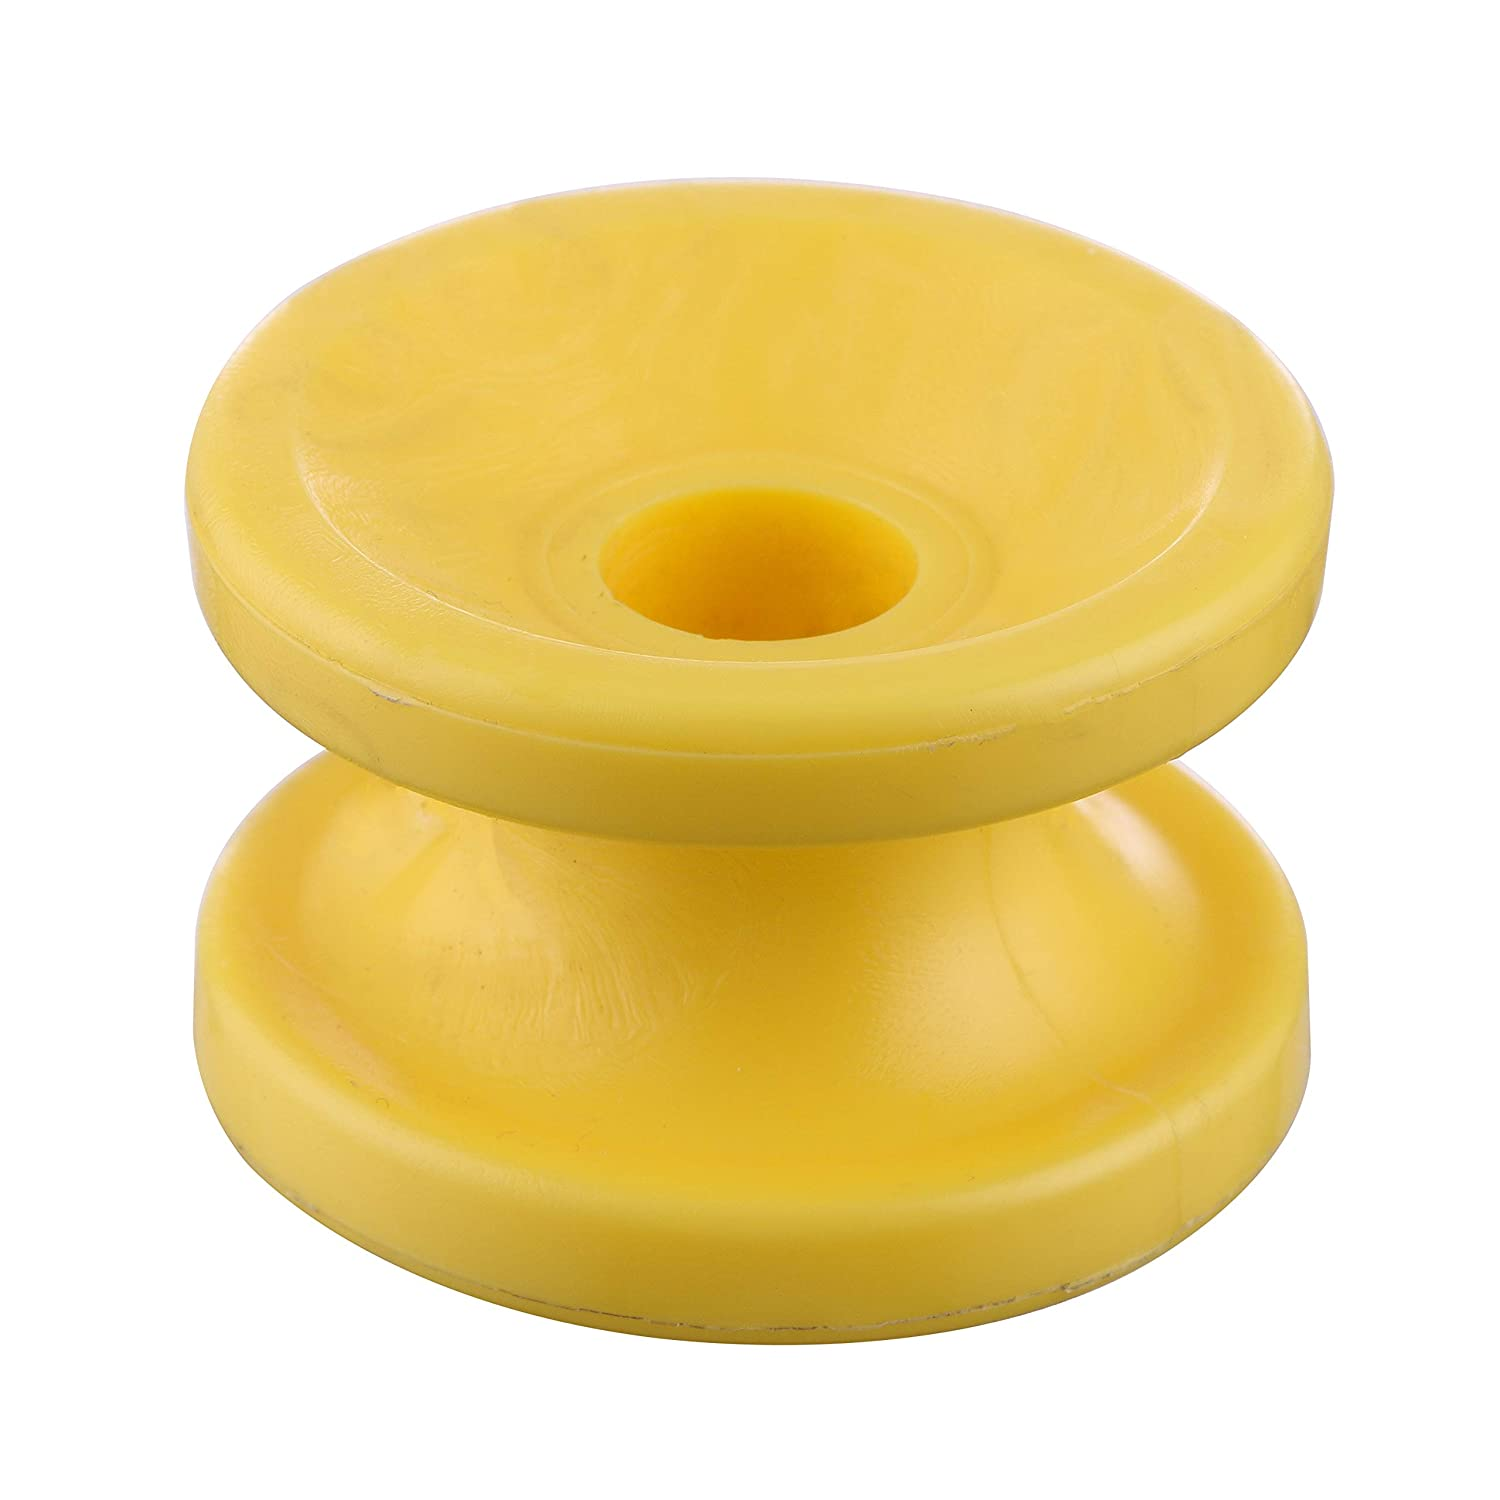 FENCE Our shop OFFers the best service SHOCK 10PCS Super sale Donut Corner Insulator for Polyrope